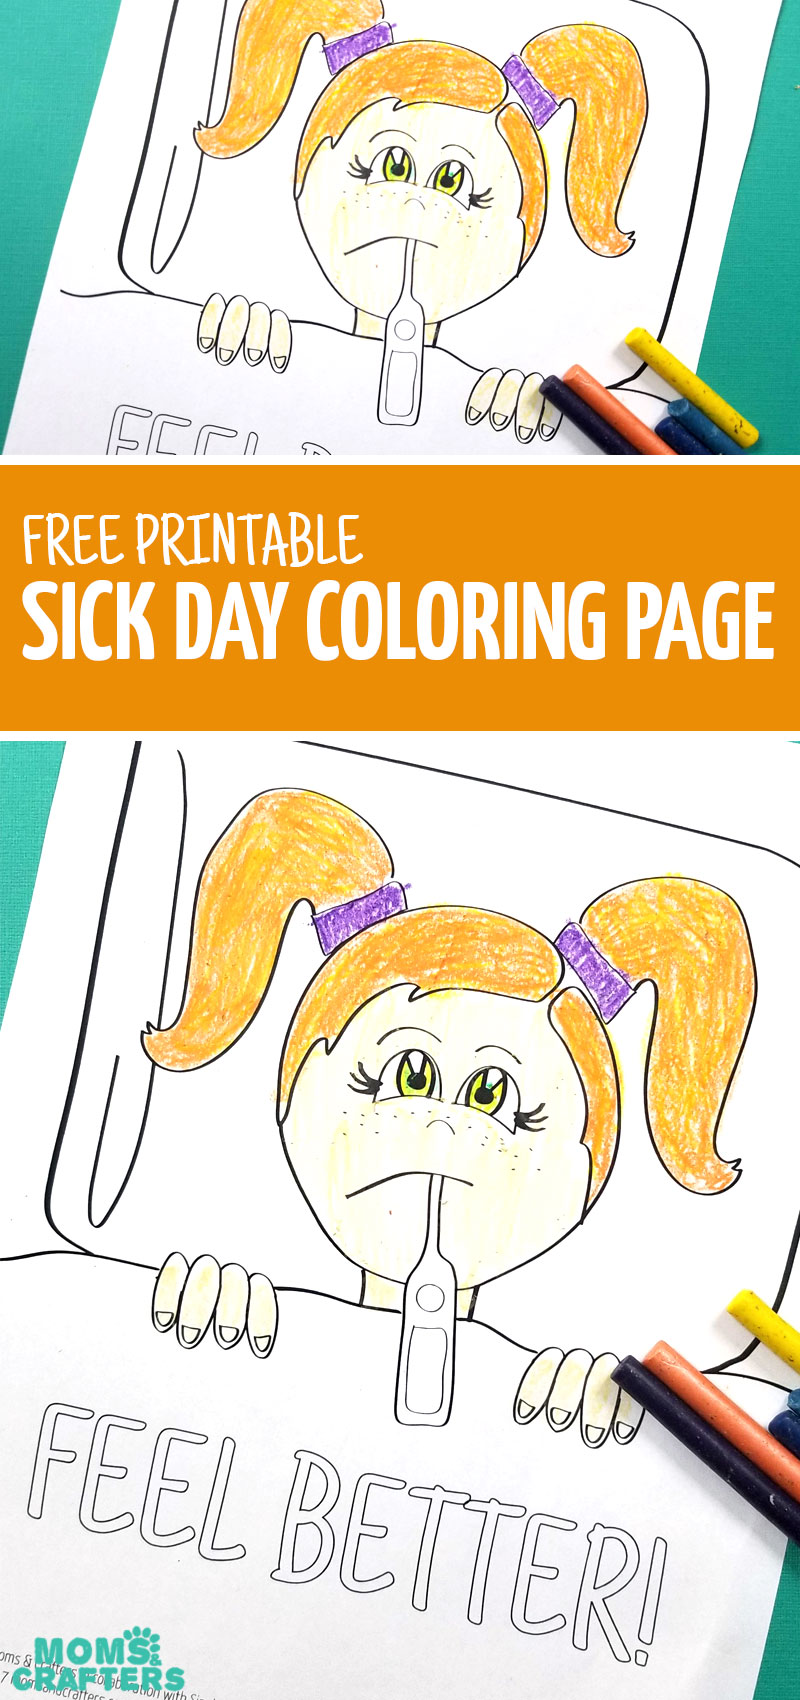 Click to download this FREE printable coloring page for kids - a perfect activity for sick days! #coloring #kidsactivities #freeprintable